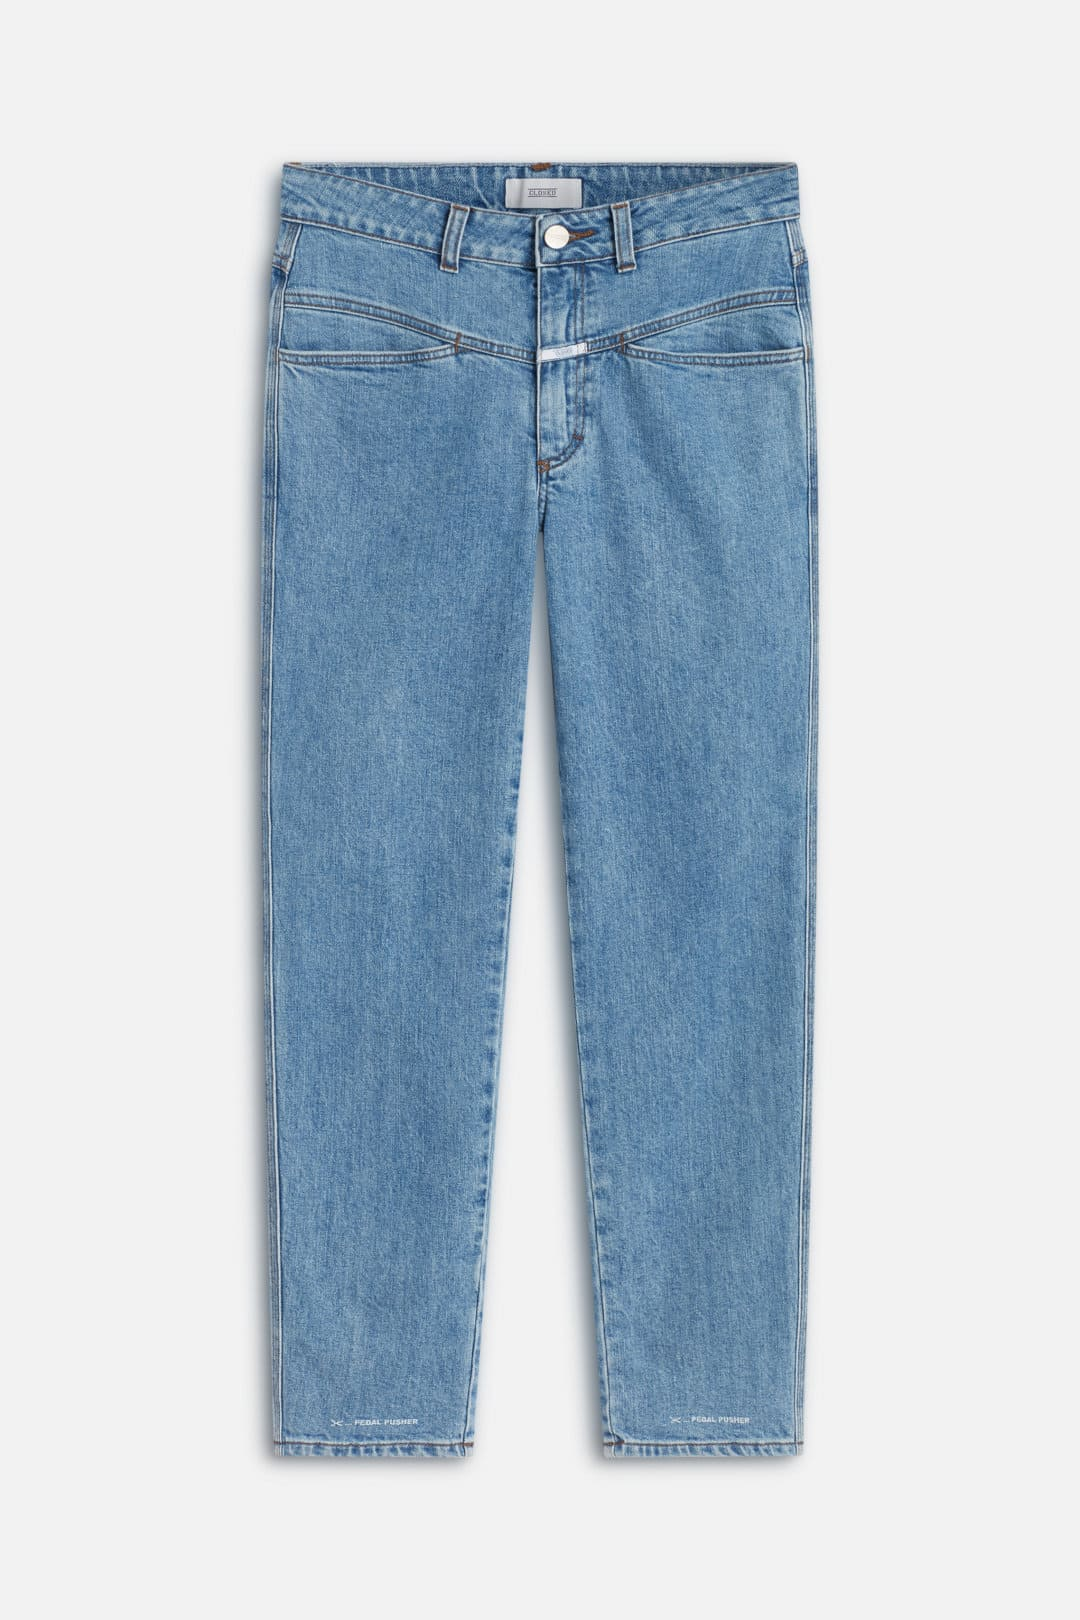 Jeans Pedal Pusher